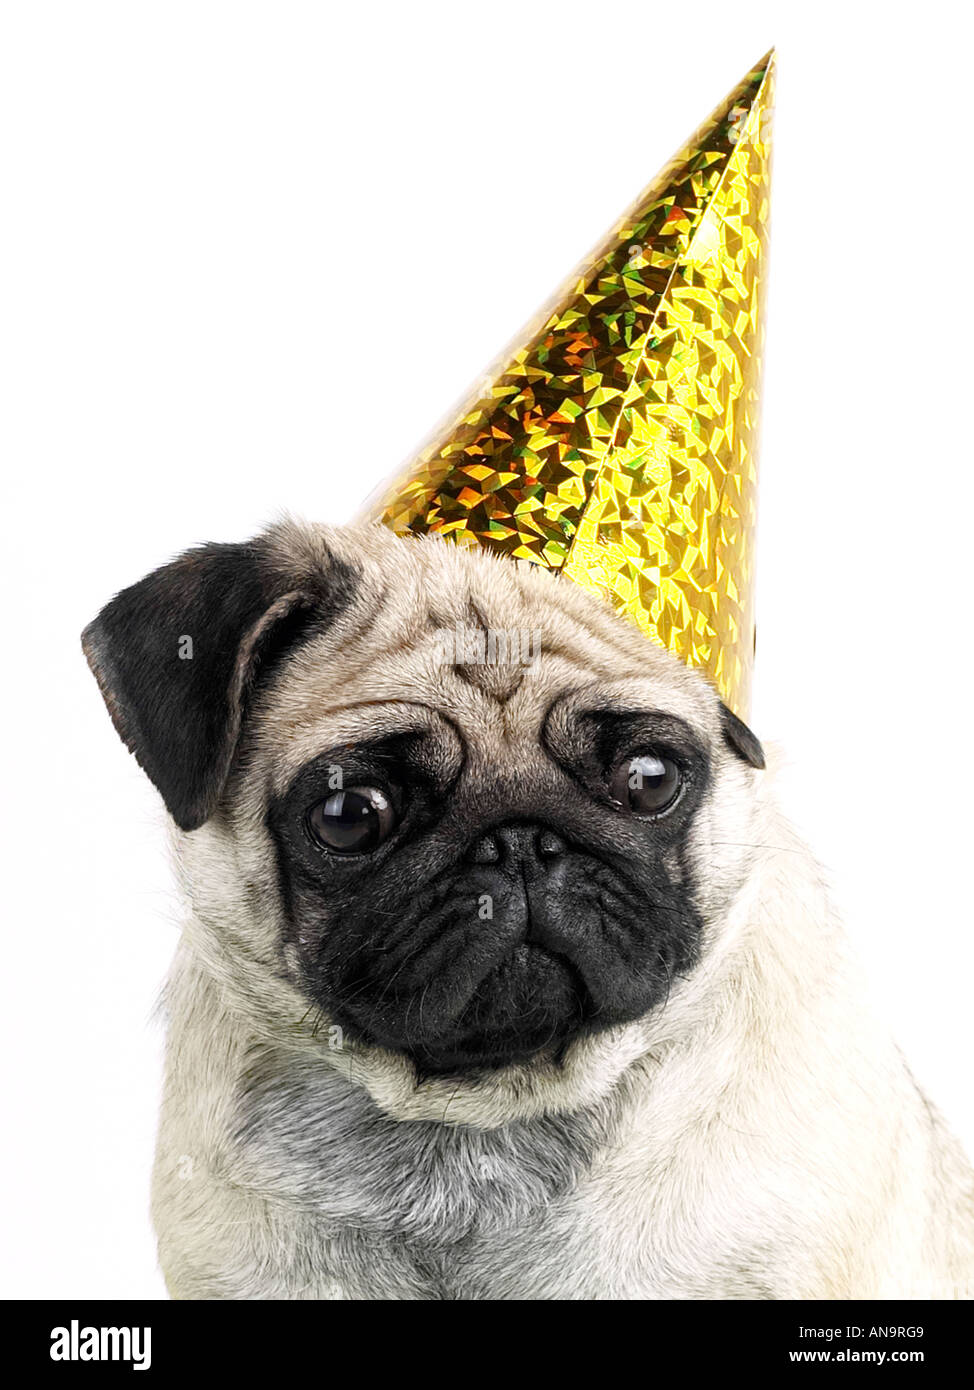 A pug wearing a party hat, being a party animal but looking unhappy. Stock Photo